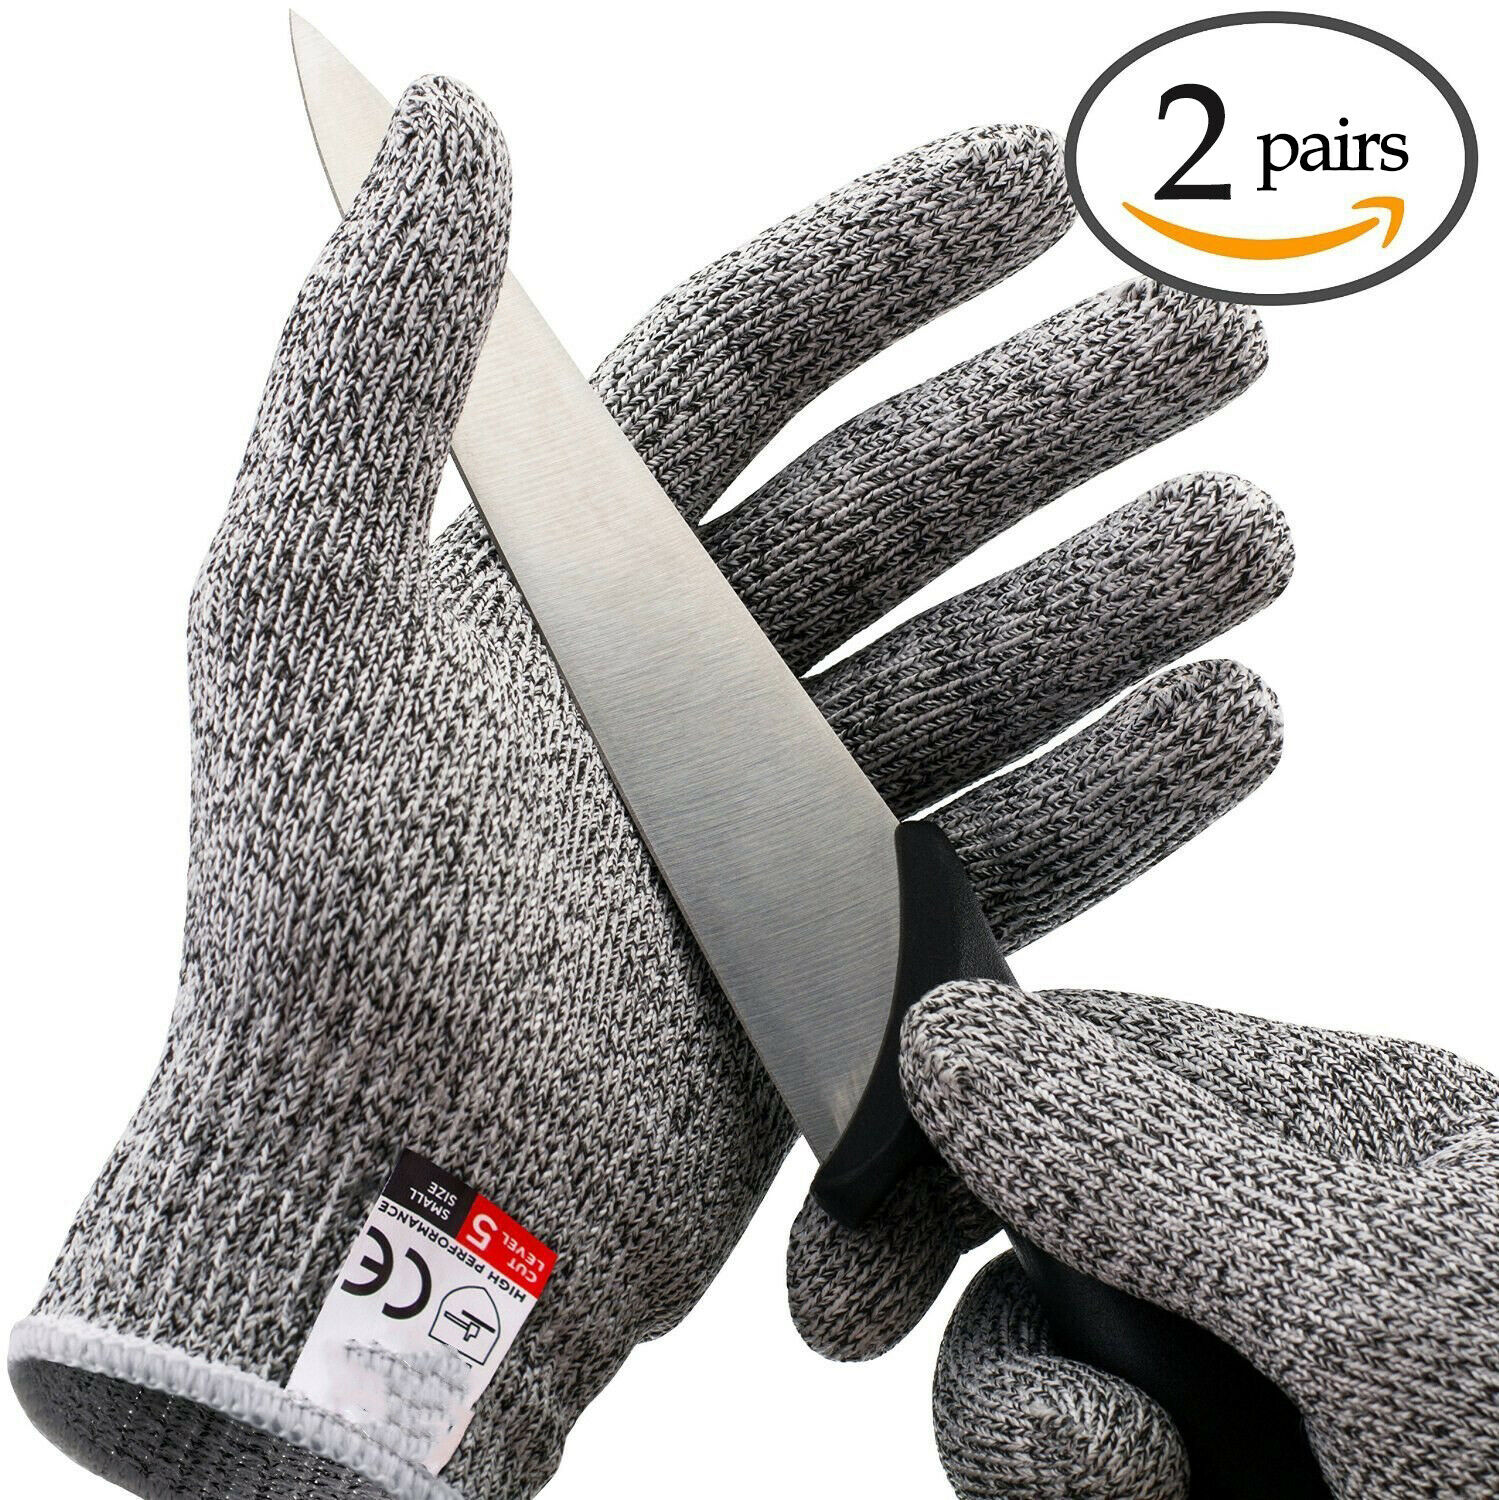 Minerva Merchandise BBQ Gloves Extreme Heat Resistant 932 F 500 C Large Oven Gloves for Men, Silicone Oven Mitts High Heat BBQ Grill Gloves for Kitchen Black, Large